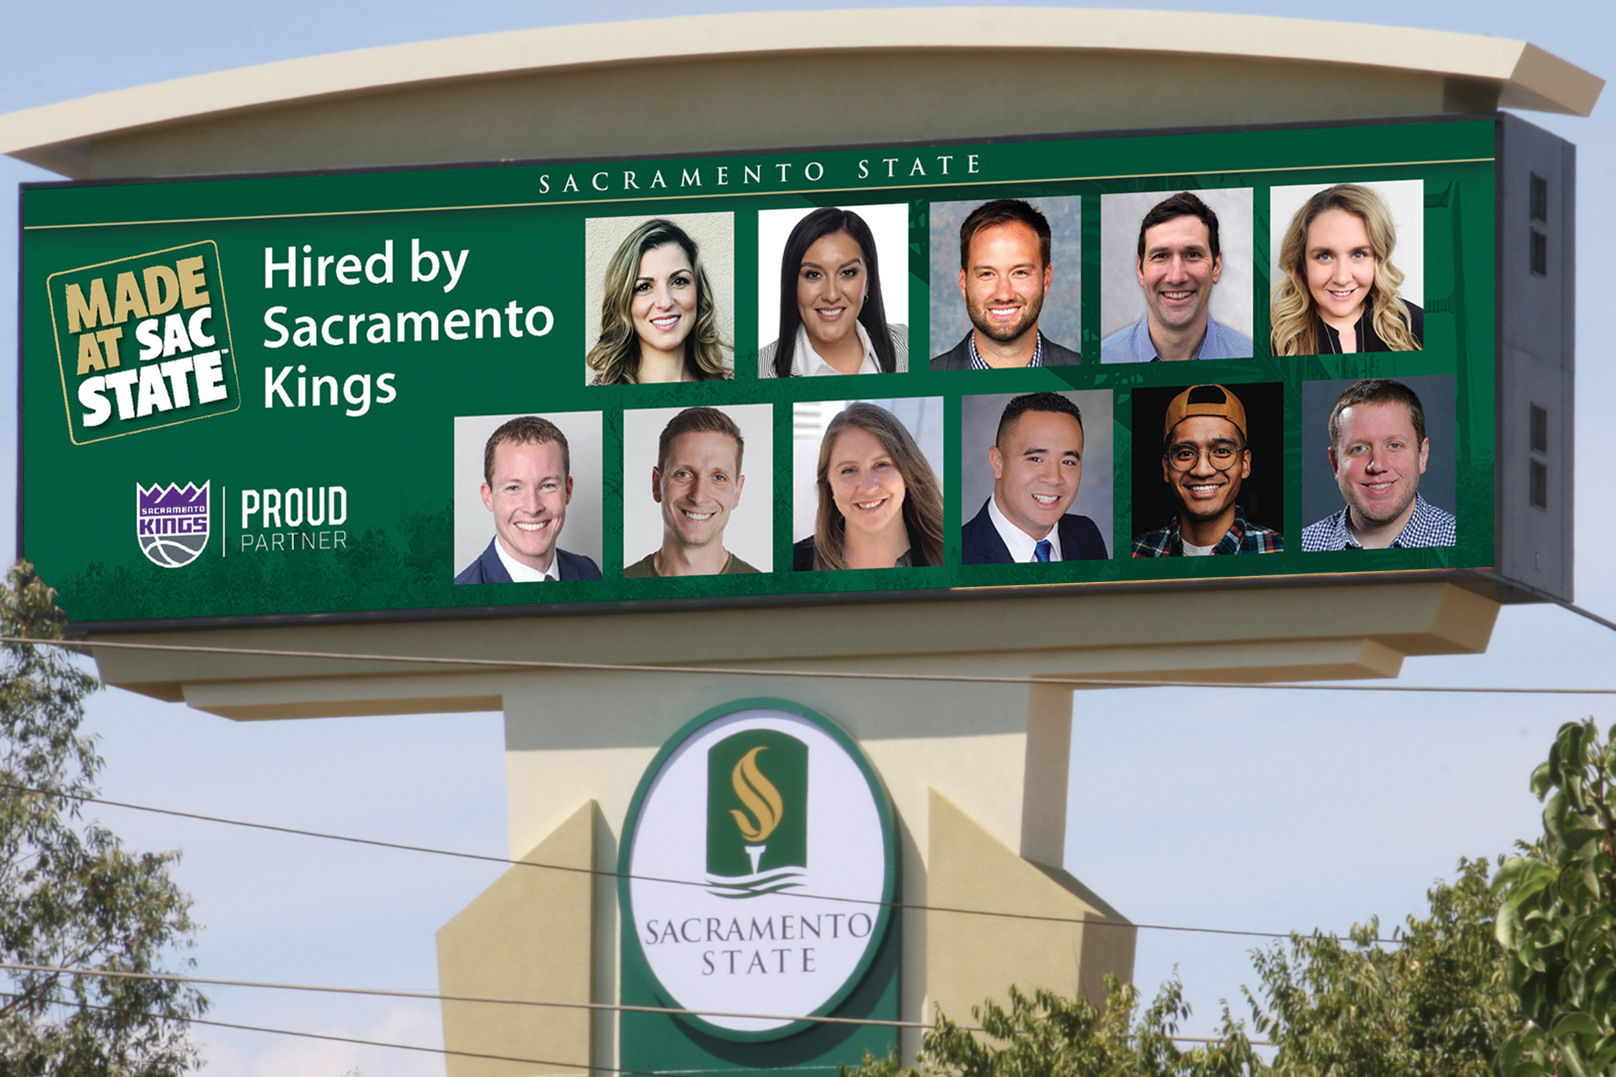 Sacramento State has provided the Sacramento Kings with important members of their corporate team over the years.